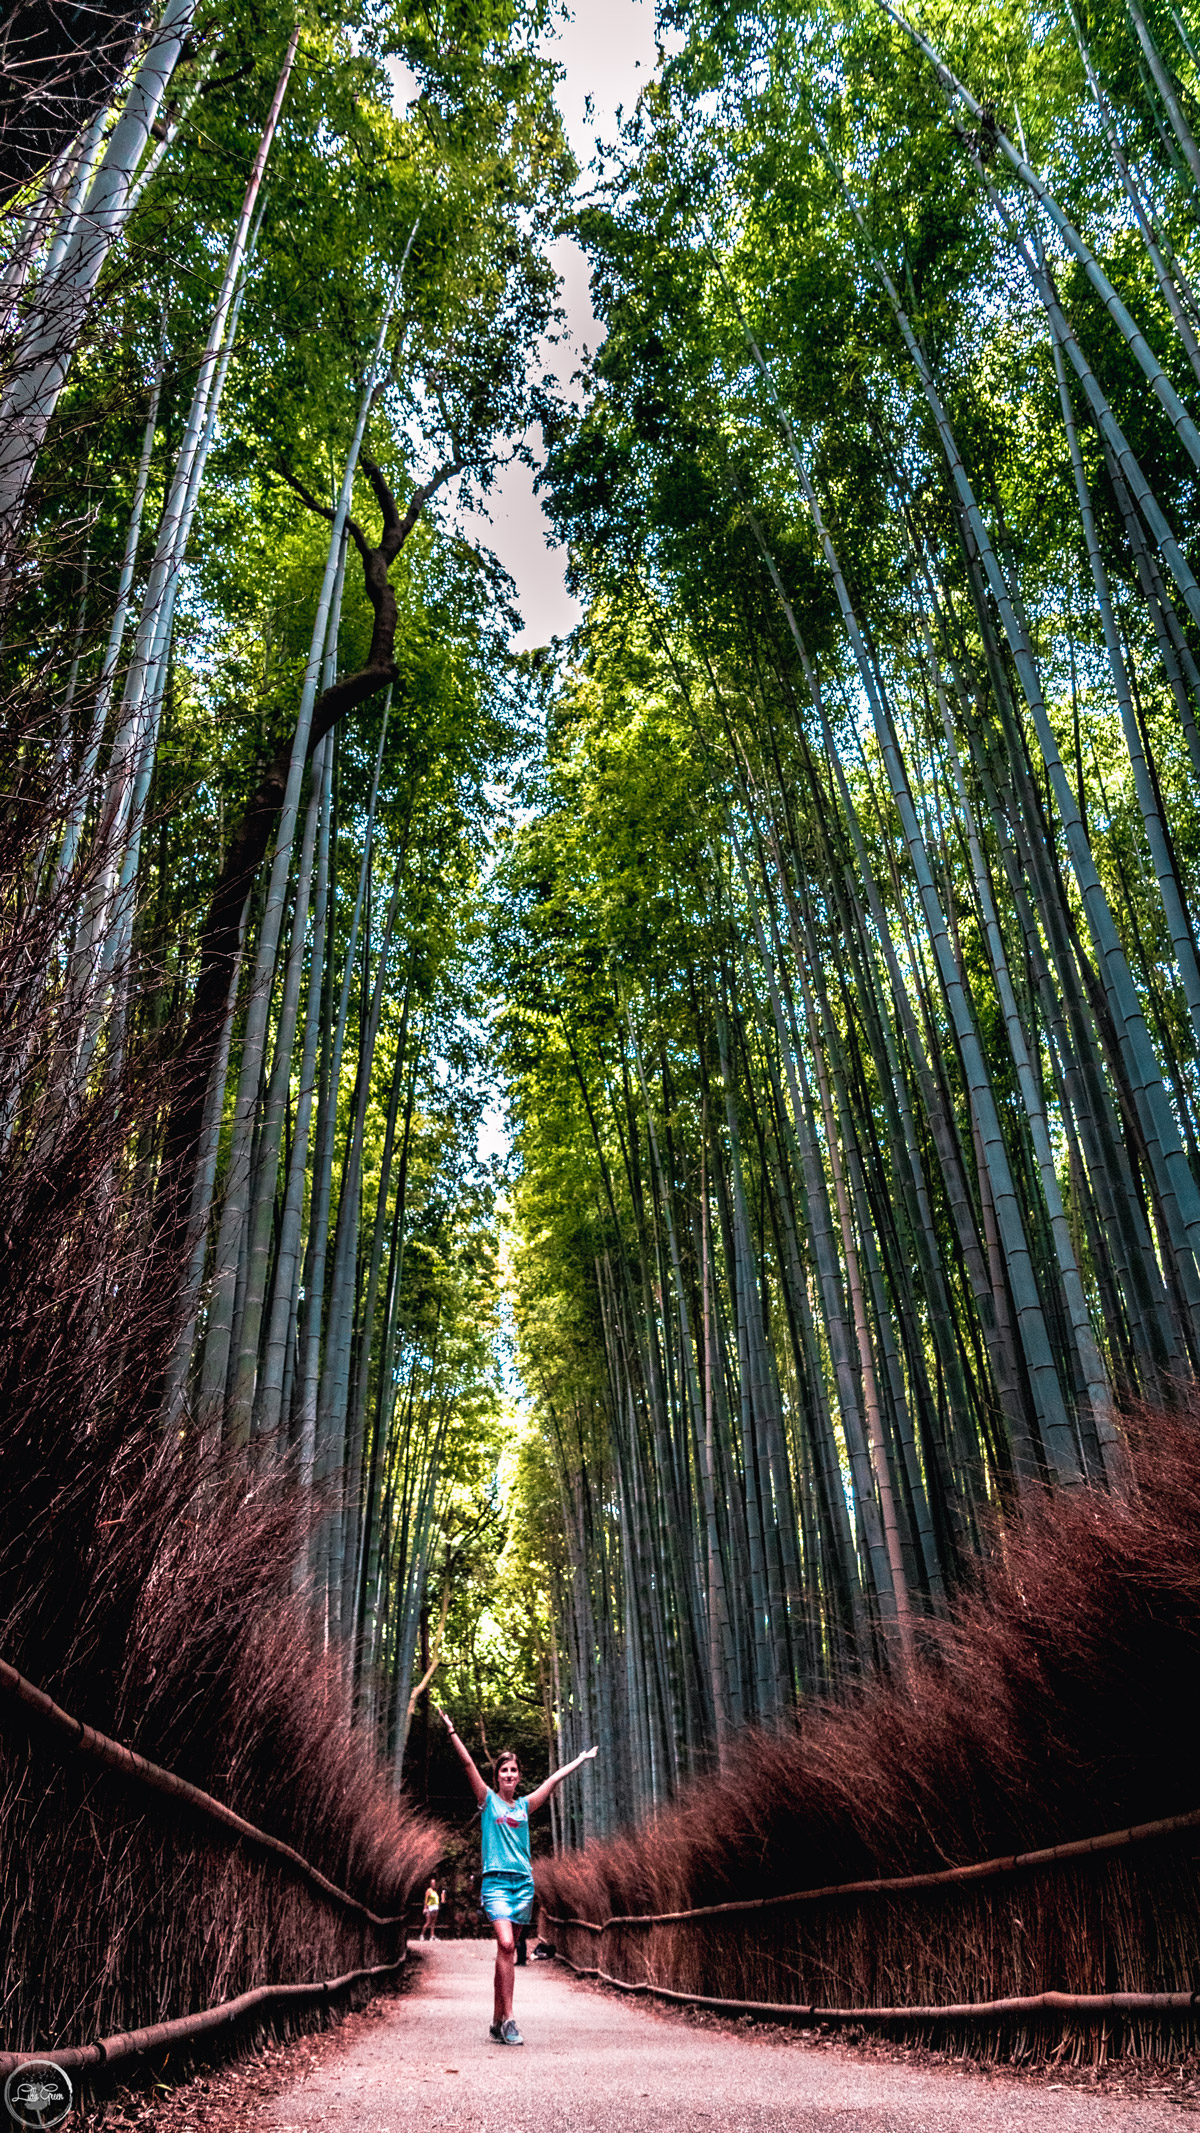 Bamboo Groove Kyoto